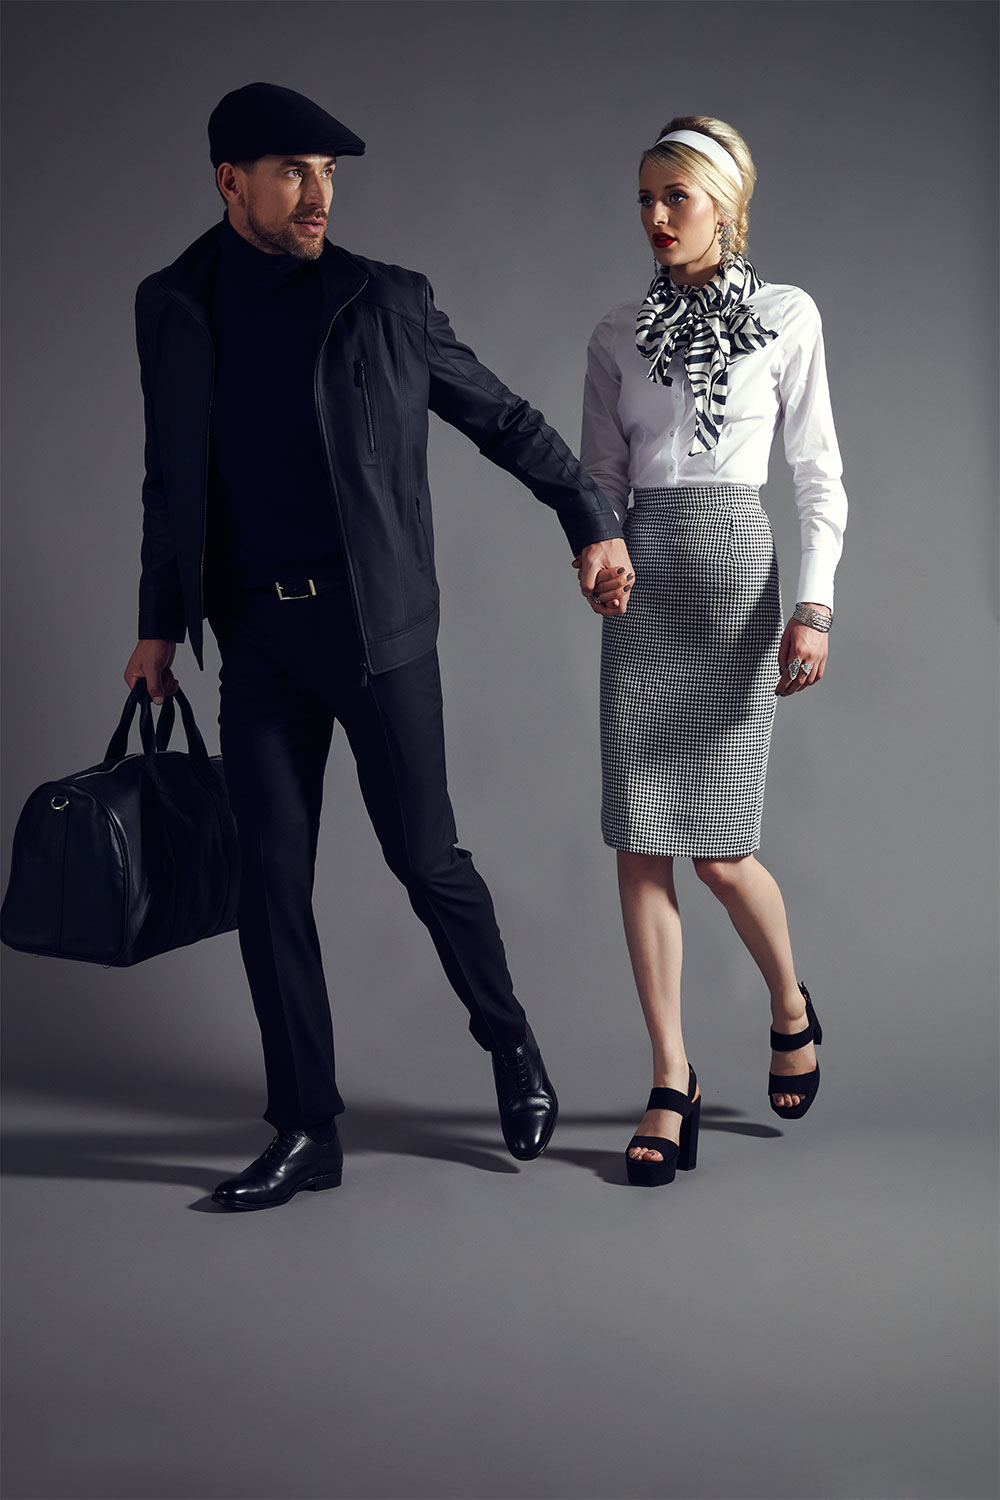 Hawes & Curtis X The Man From U.N.C.L.E / Warner Brothers Films Capsule Collection - Autumn 2015  Concept & Art Director | Casting | Shoot Production | Photography by Melissa Uren